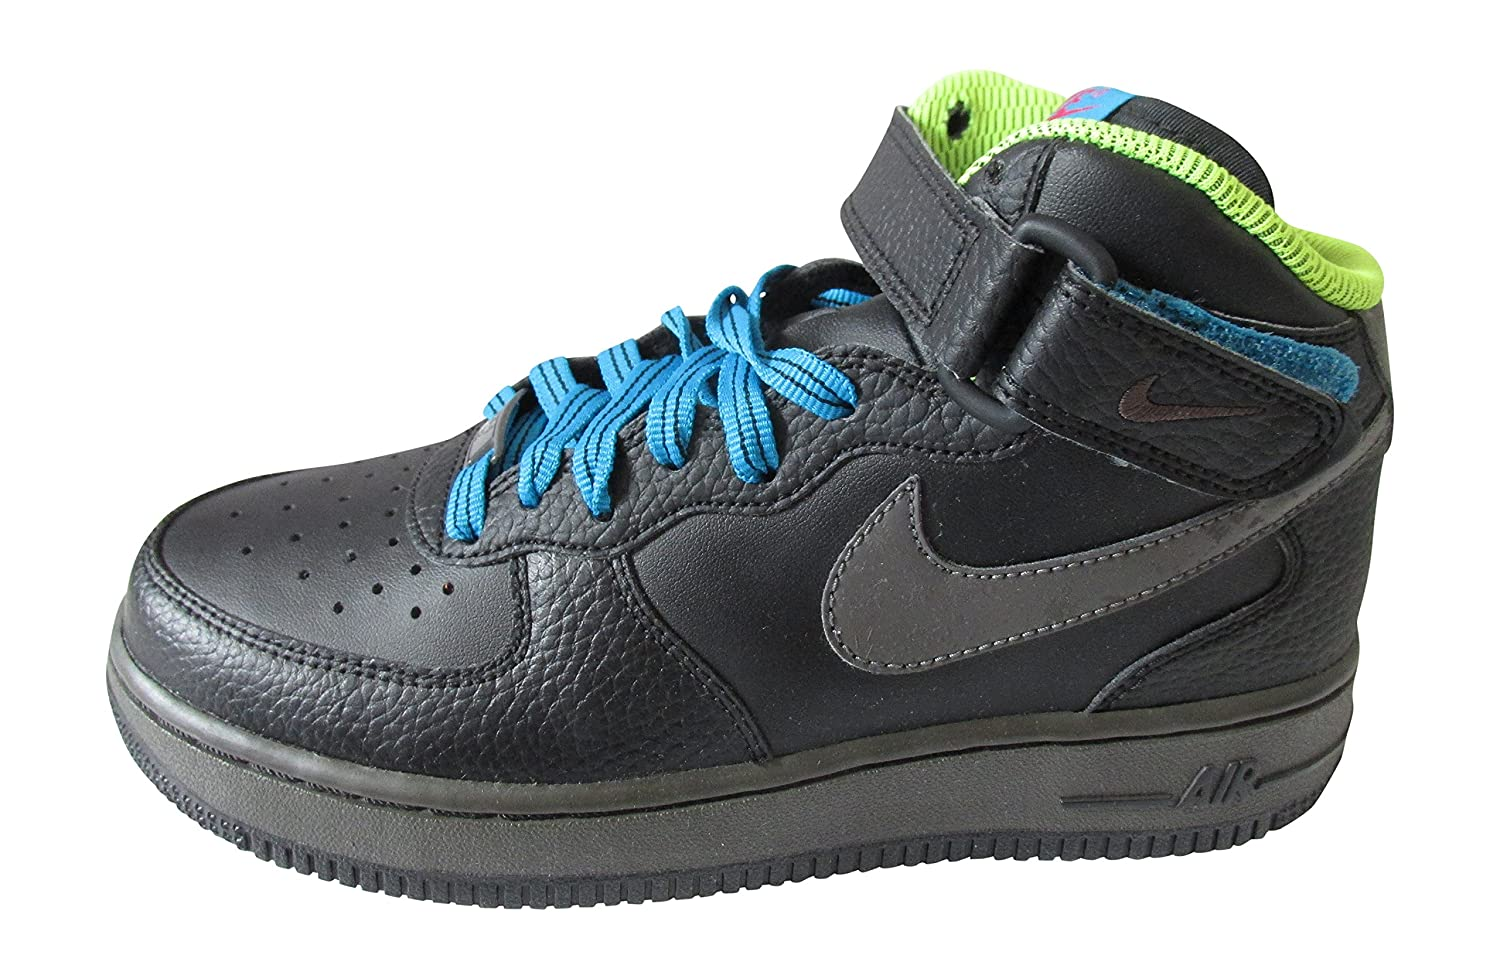 41506f6230f8 Amazon.com | Nike air Force 1 mid (GS) hi top Trainers 314195 Sneakers Shoes  (UK 4.5 us 5Y EU 37.5, Black mid Fog Dynamic Blue Volt 017) | Running